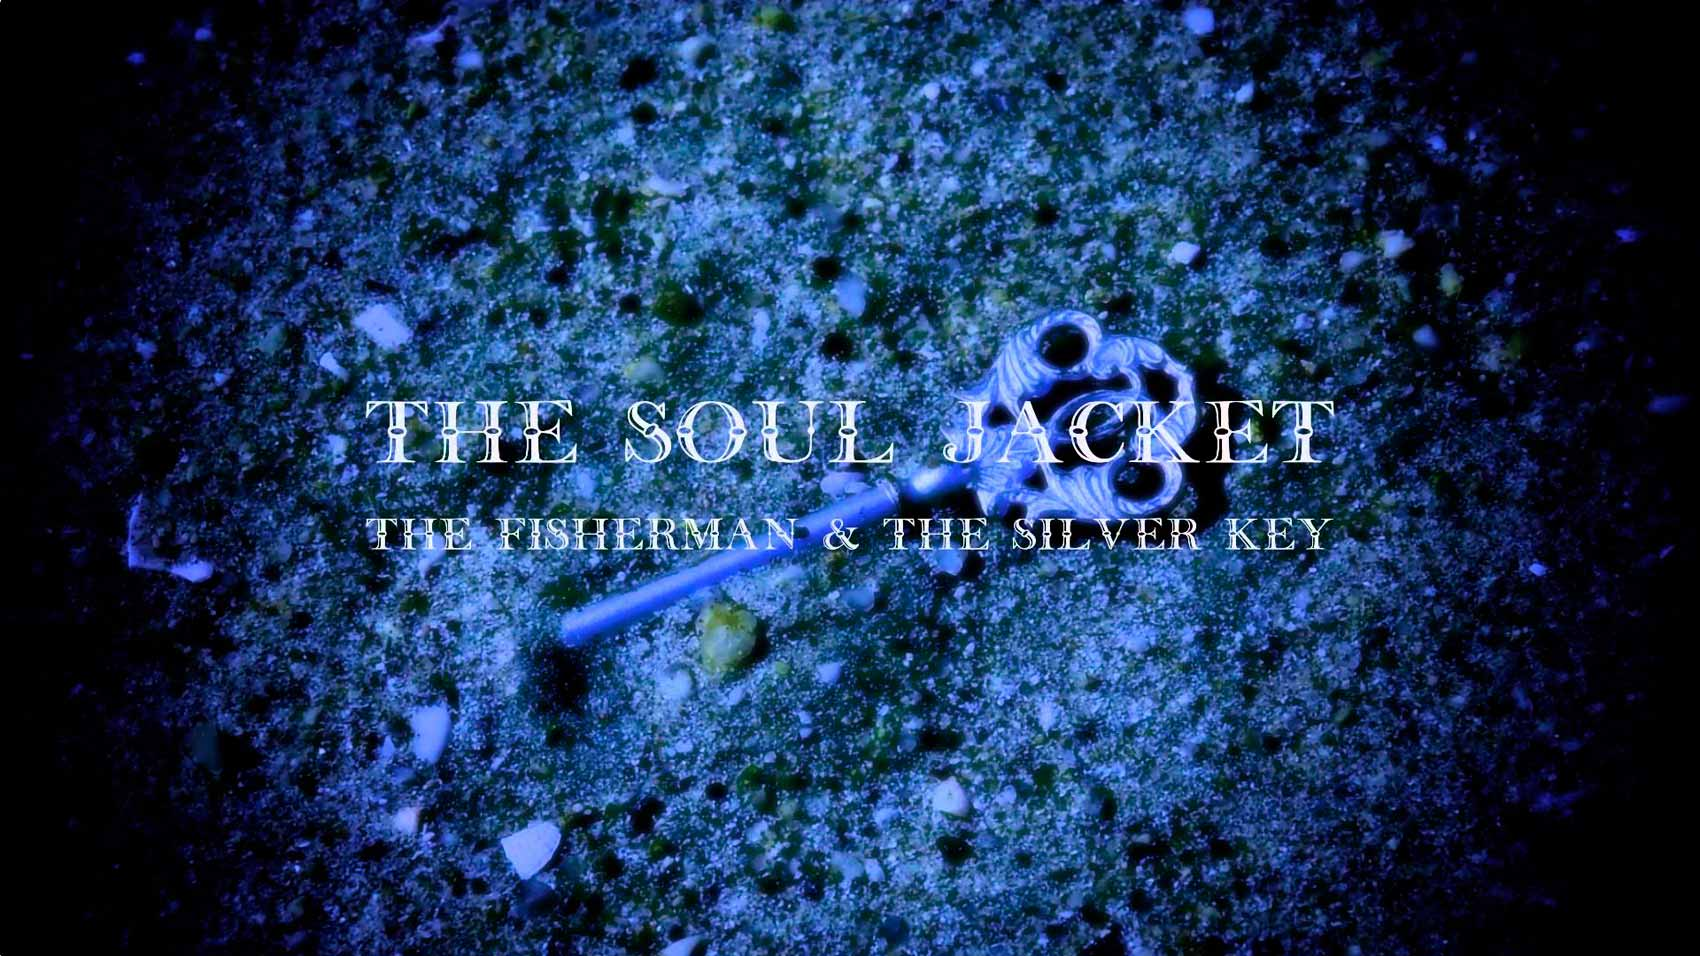 The Fisherman & The Silver Key. Abrigo para el alma por The Soul Jacket.